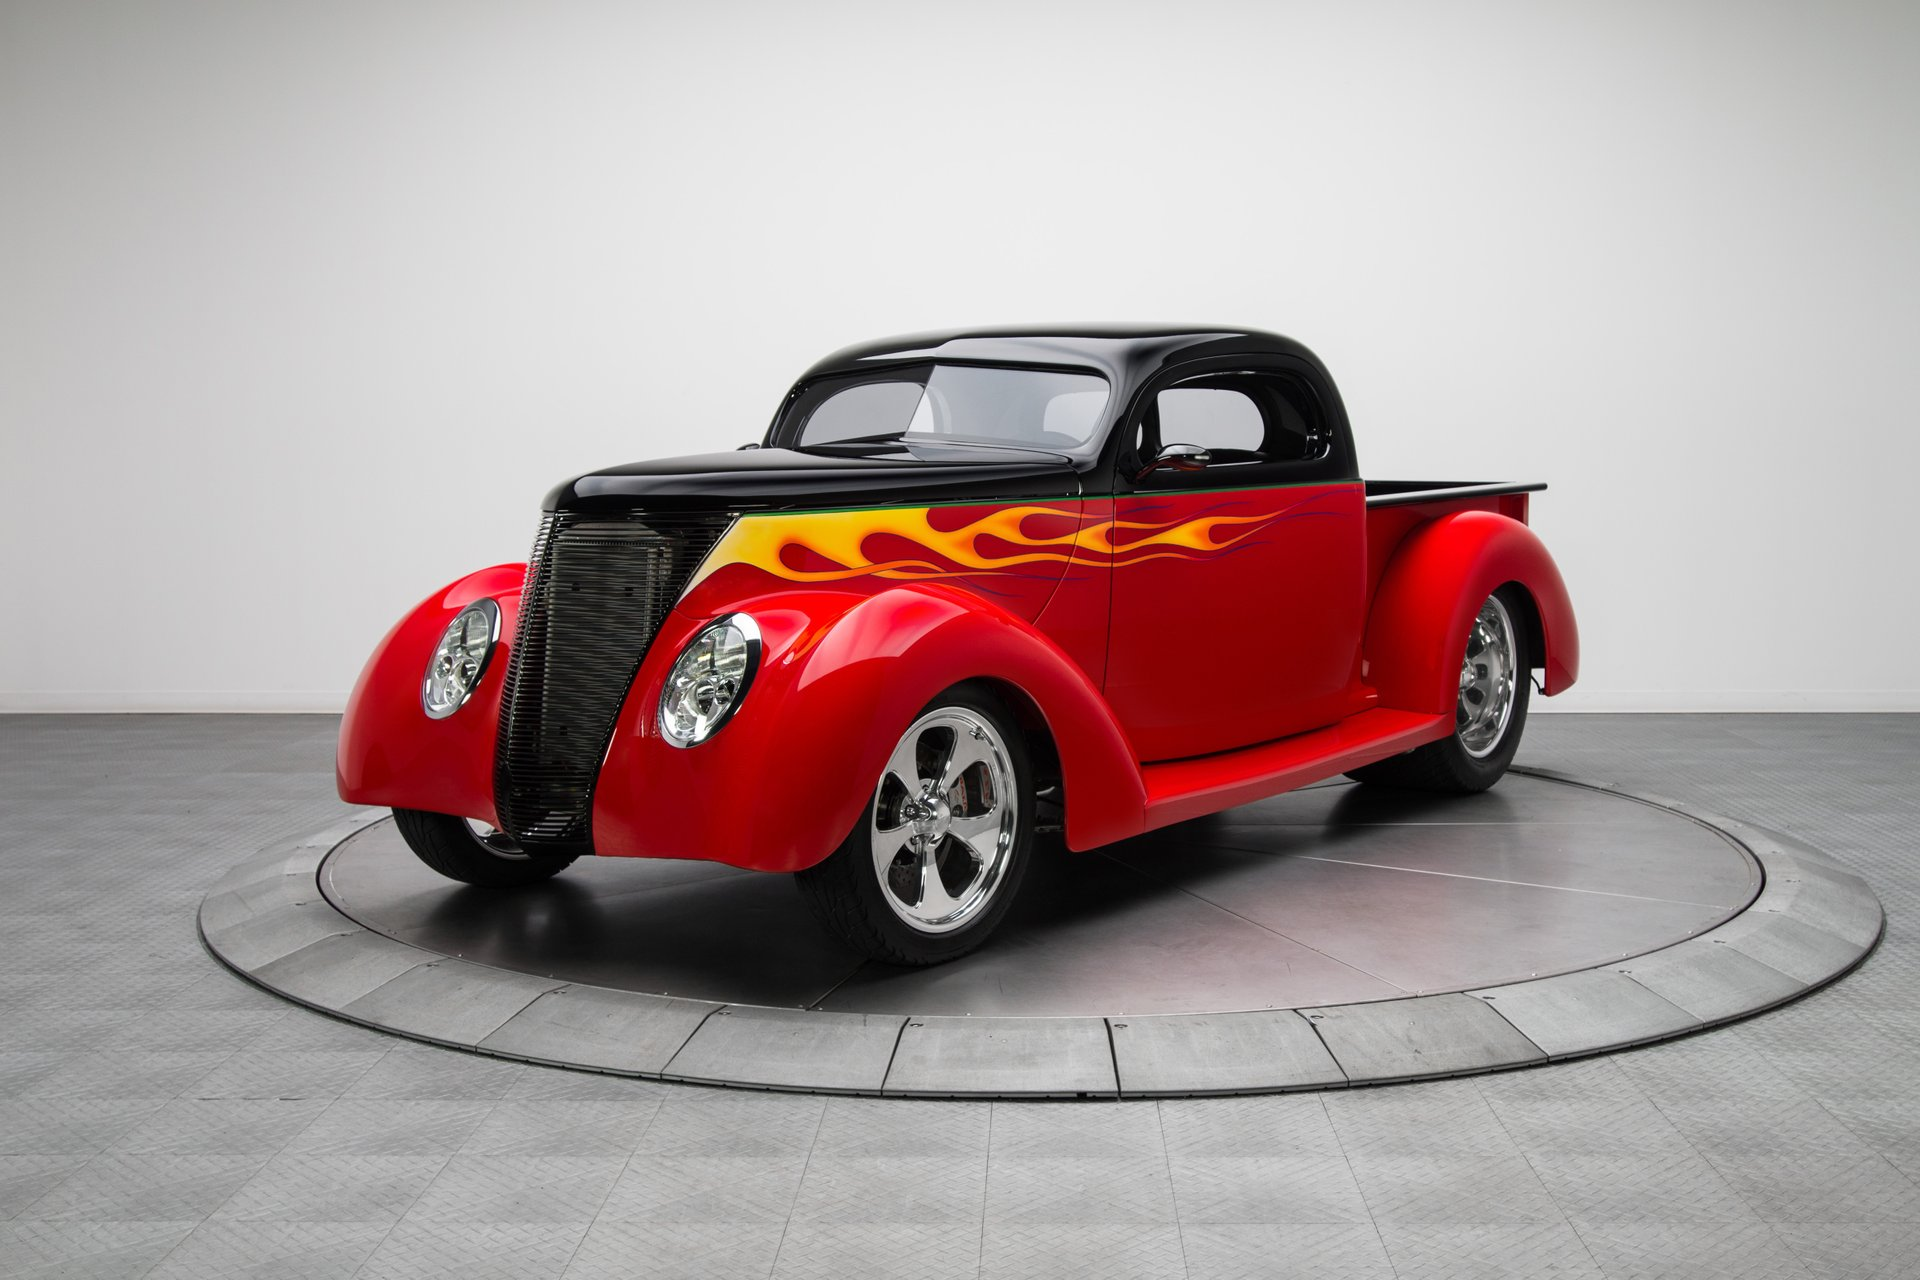 134706 1937 Ford Pickup RK Motors Classic Cars for Sale